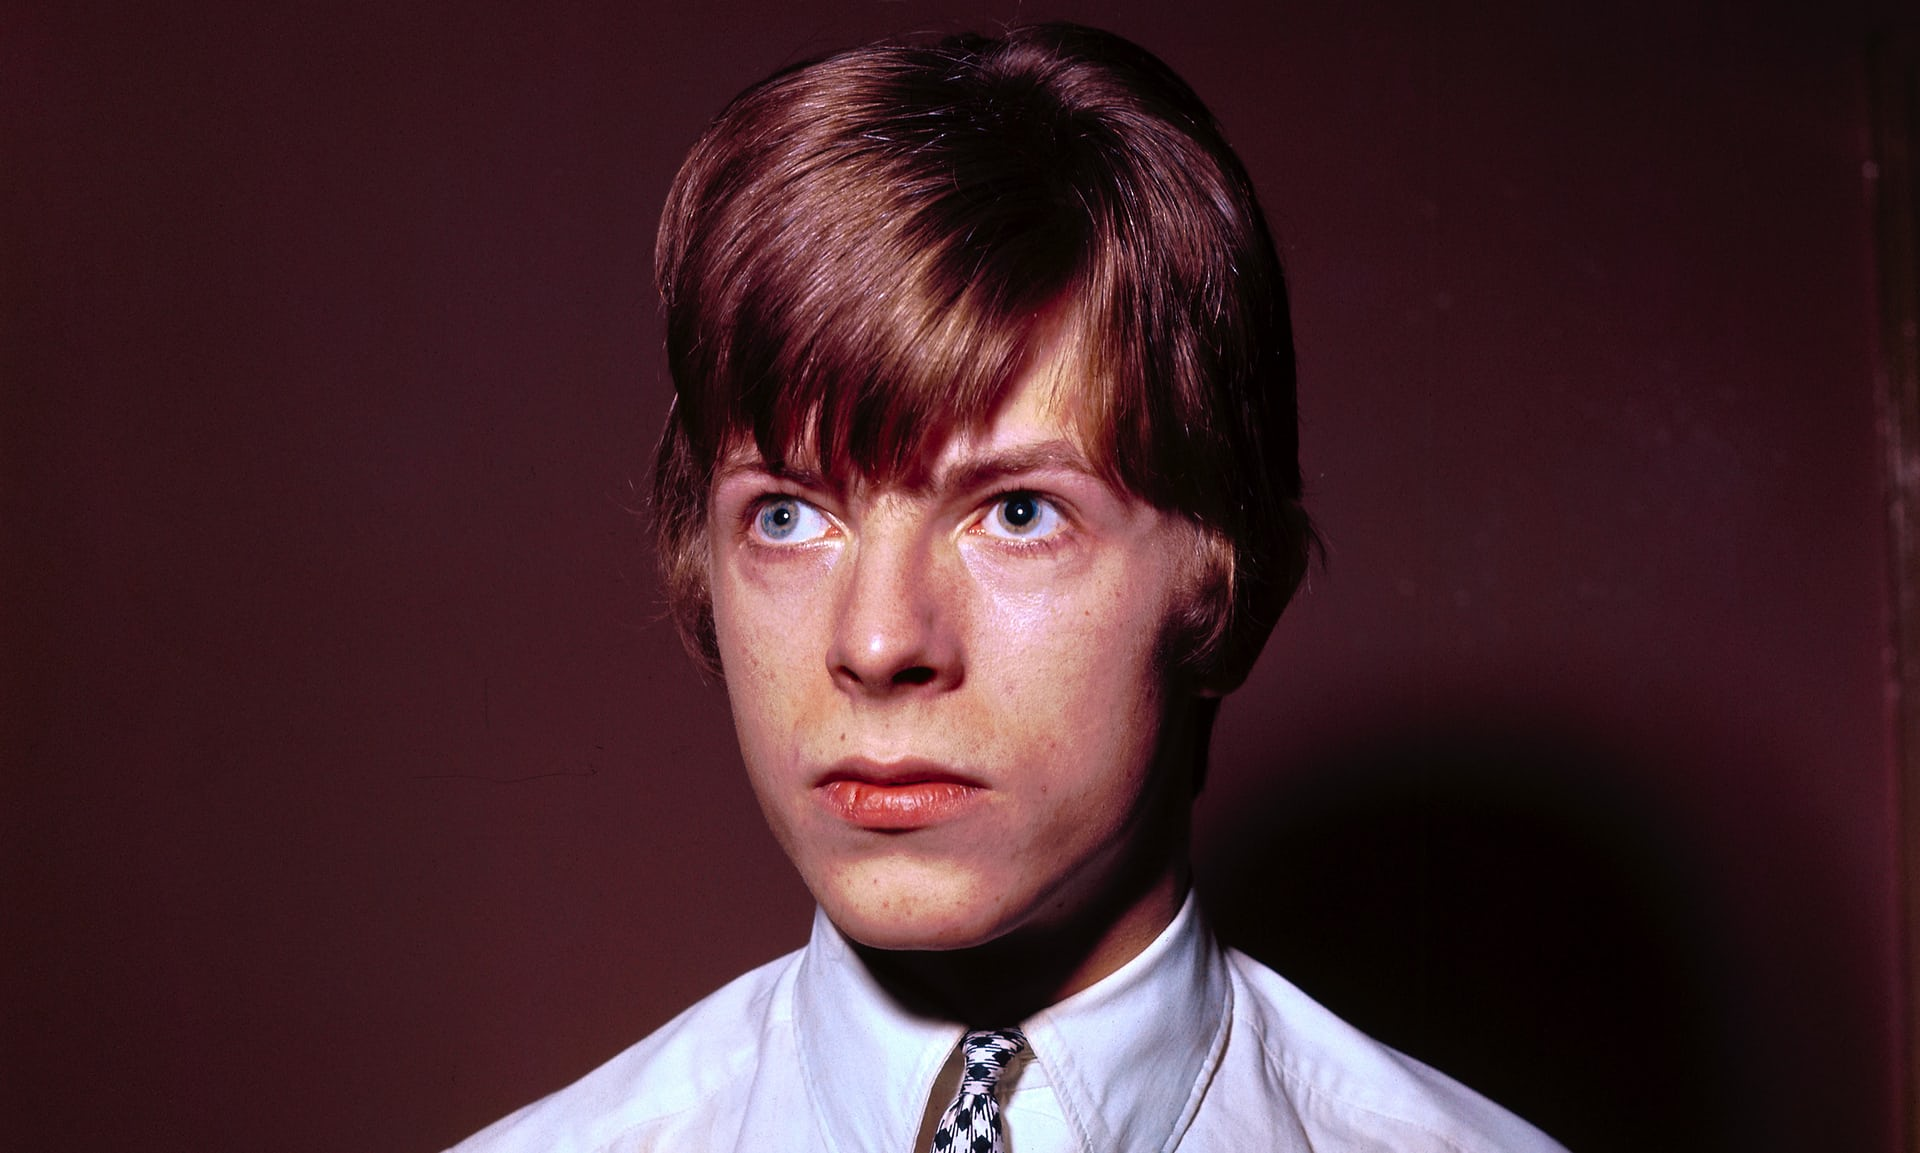 Long lost first demo of 16-year old David Bowie discovered